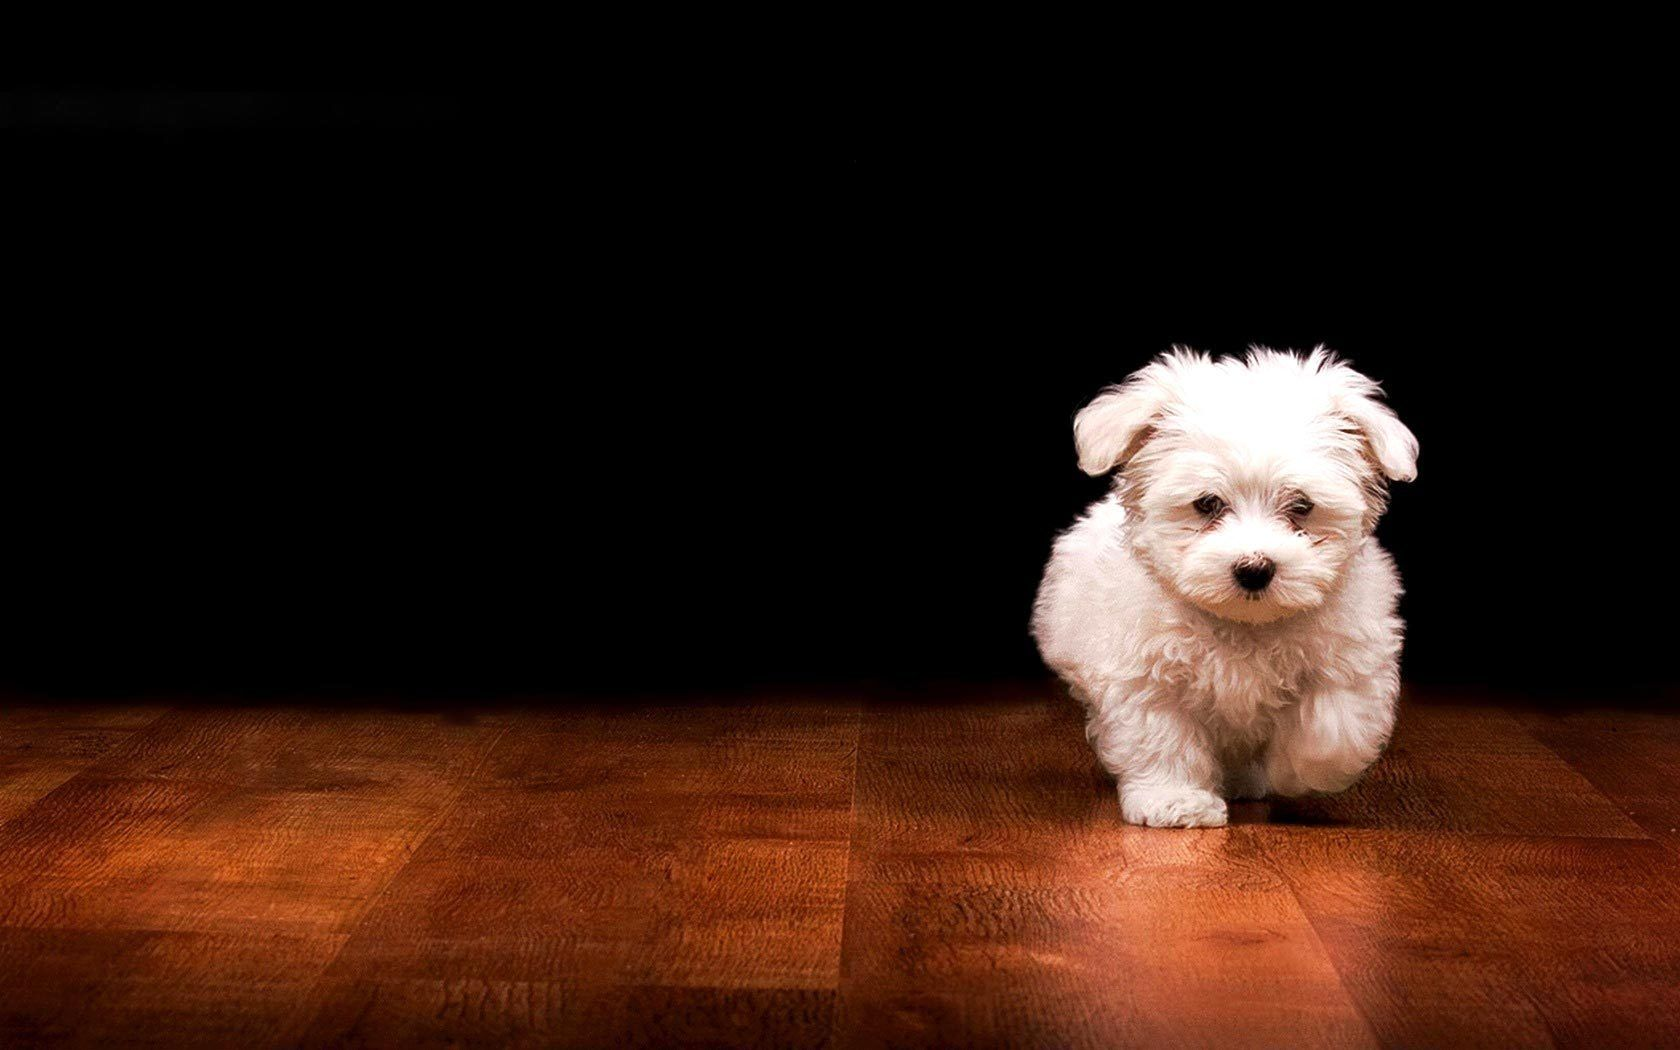 404 Not Found Puppy Wallpaper Puppy Backgrounds Cute White Puppies